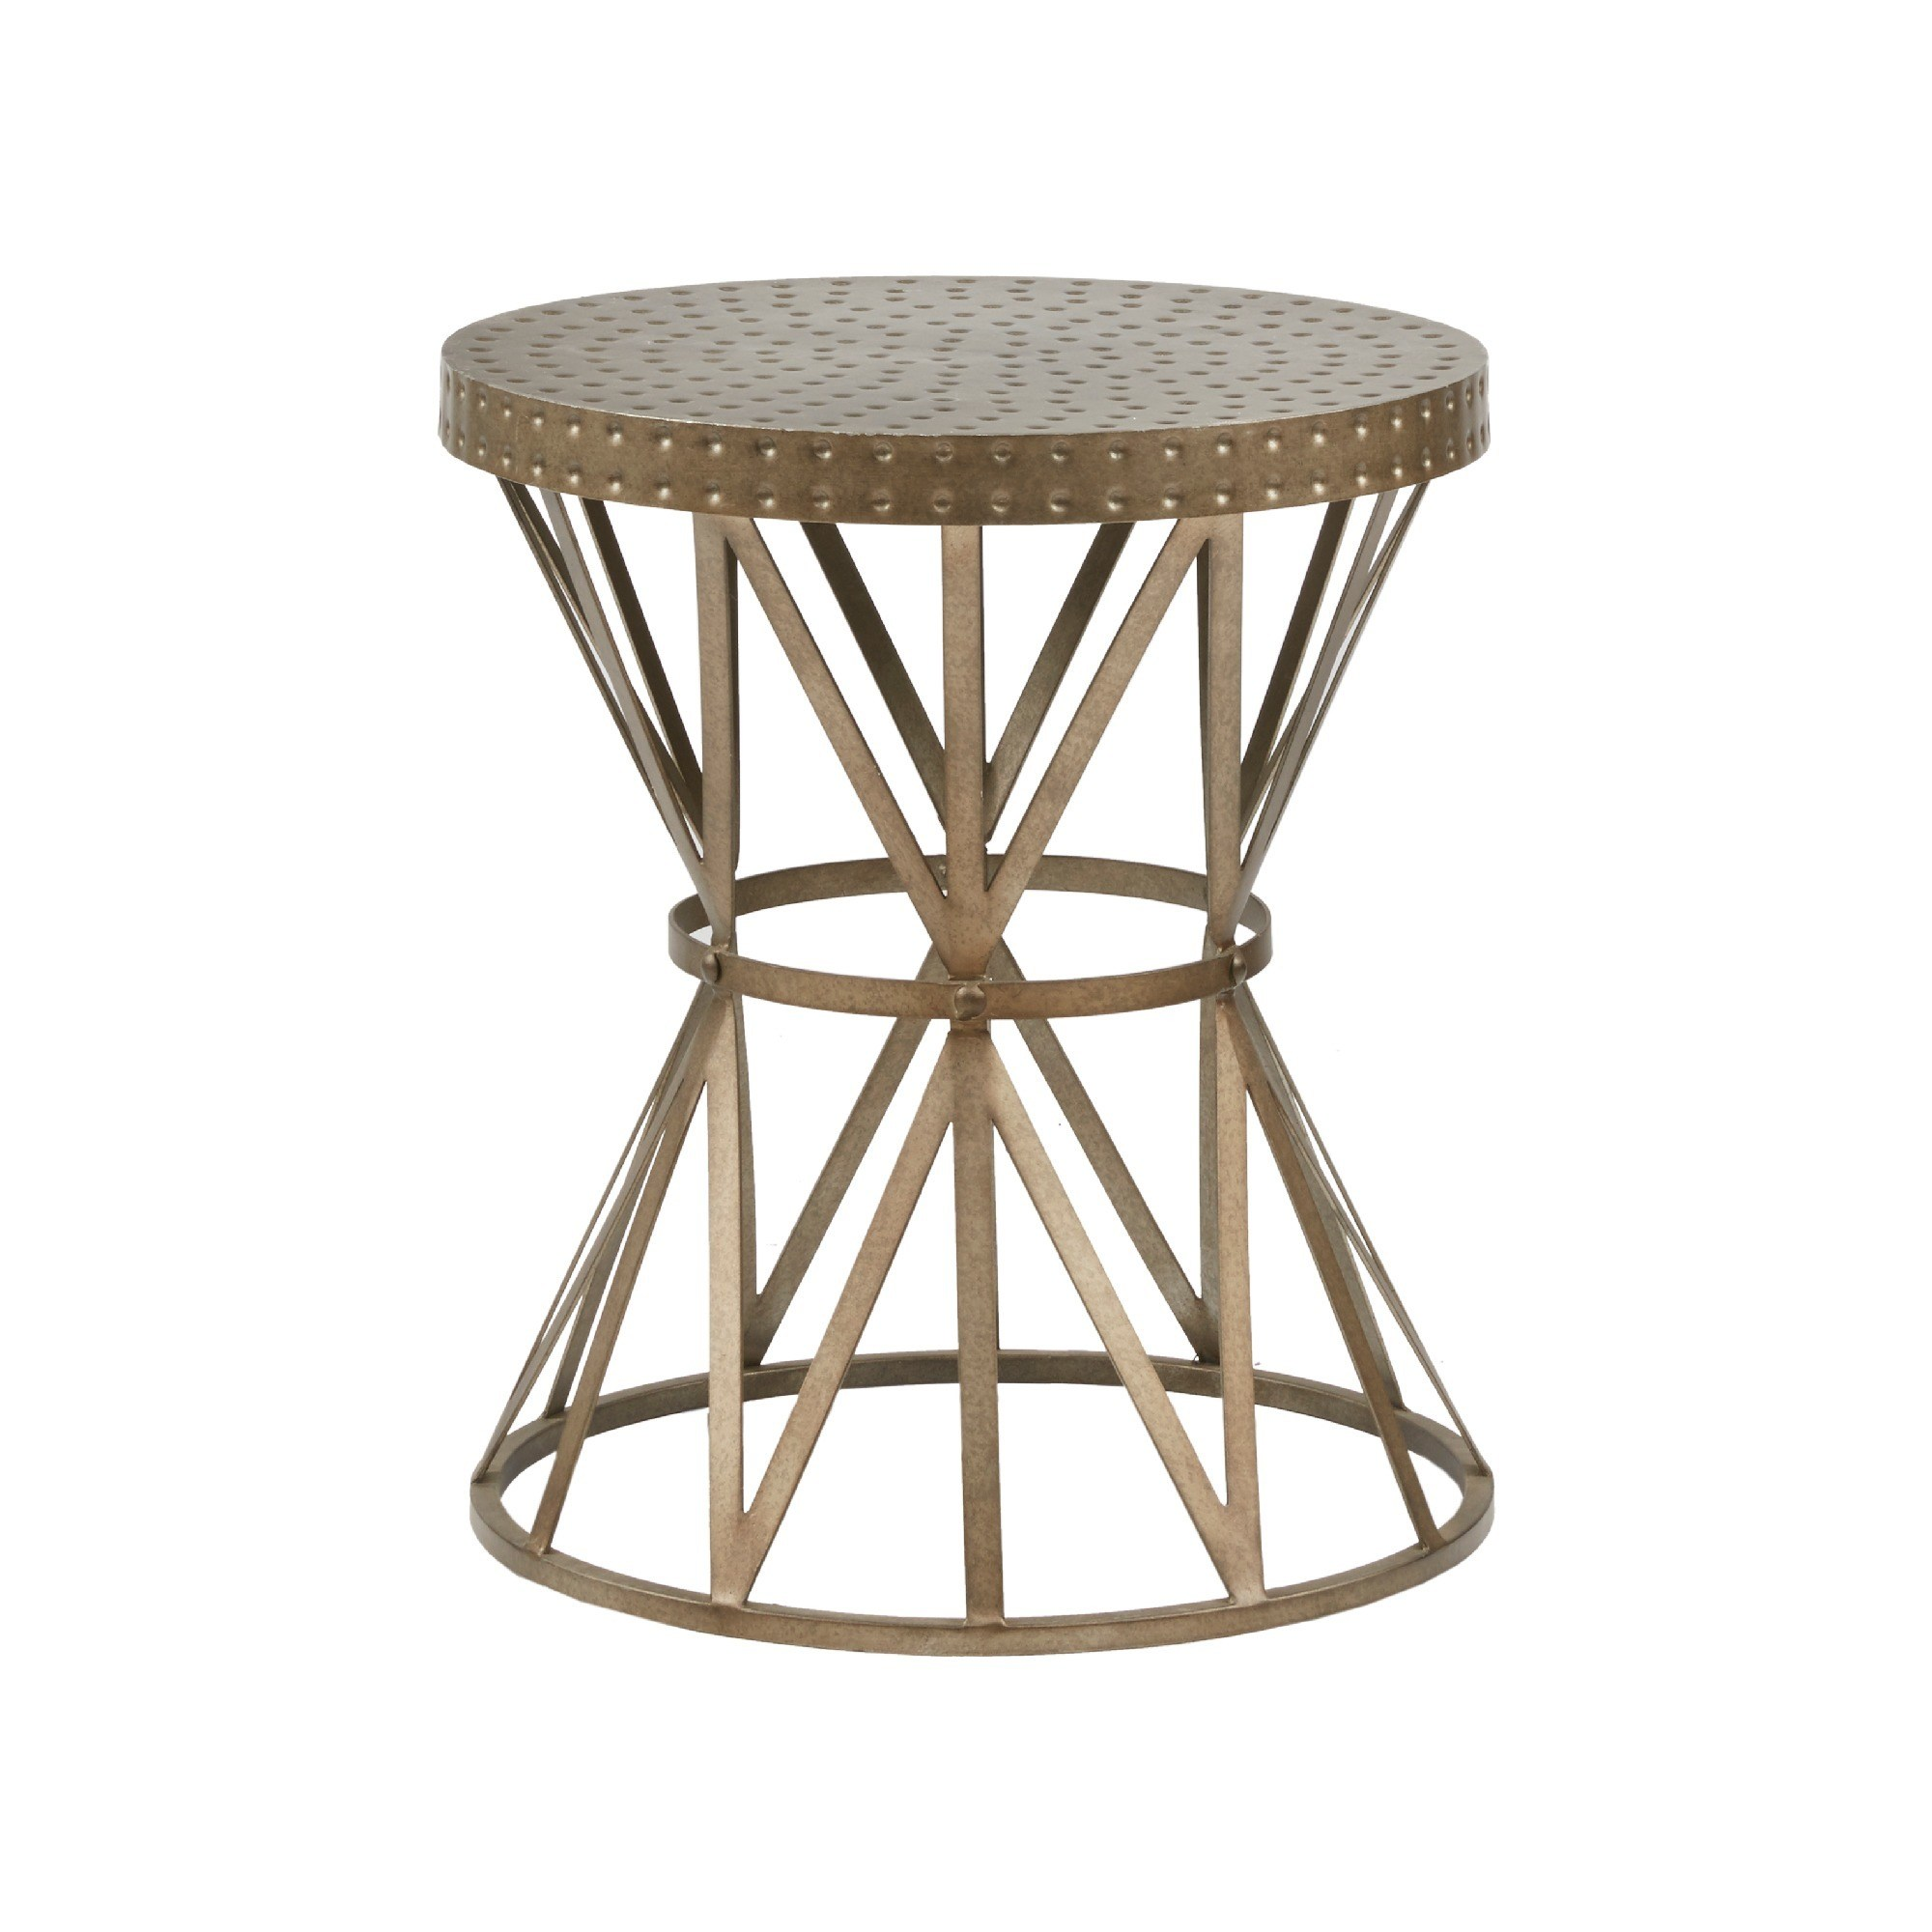 madison park contemporary gaven antique bronze accent table free shipping today dining room sage green coffee wooden plant stand turned legs very small end tables round dark wood